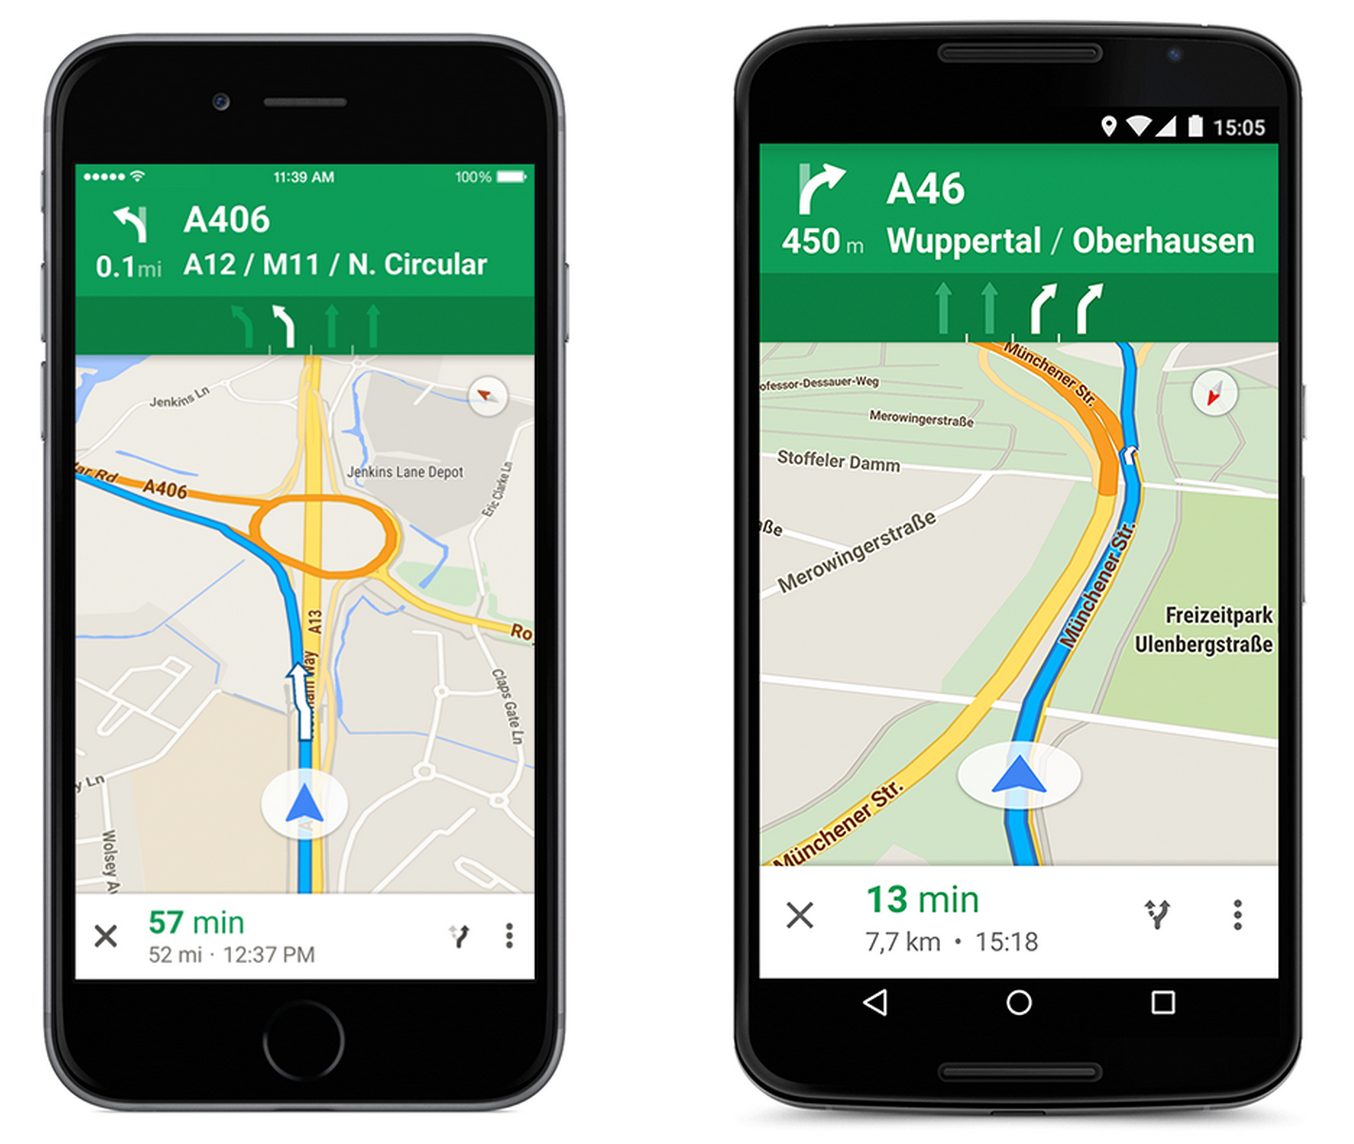 Google Maps adds lane guidance for highways in Germany ... on google earth update 2014, google maps updated 2012, google maps street view, google search, google sky,